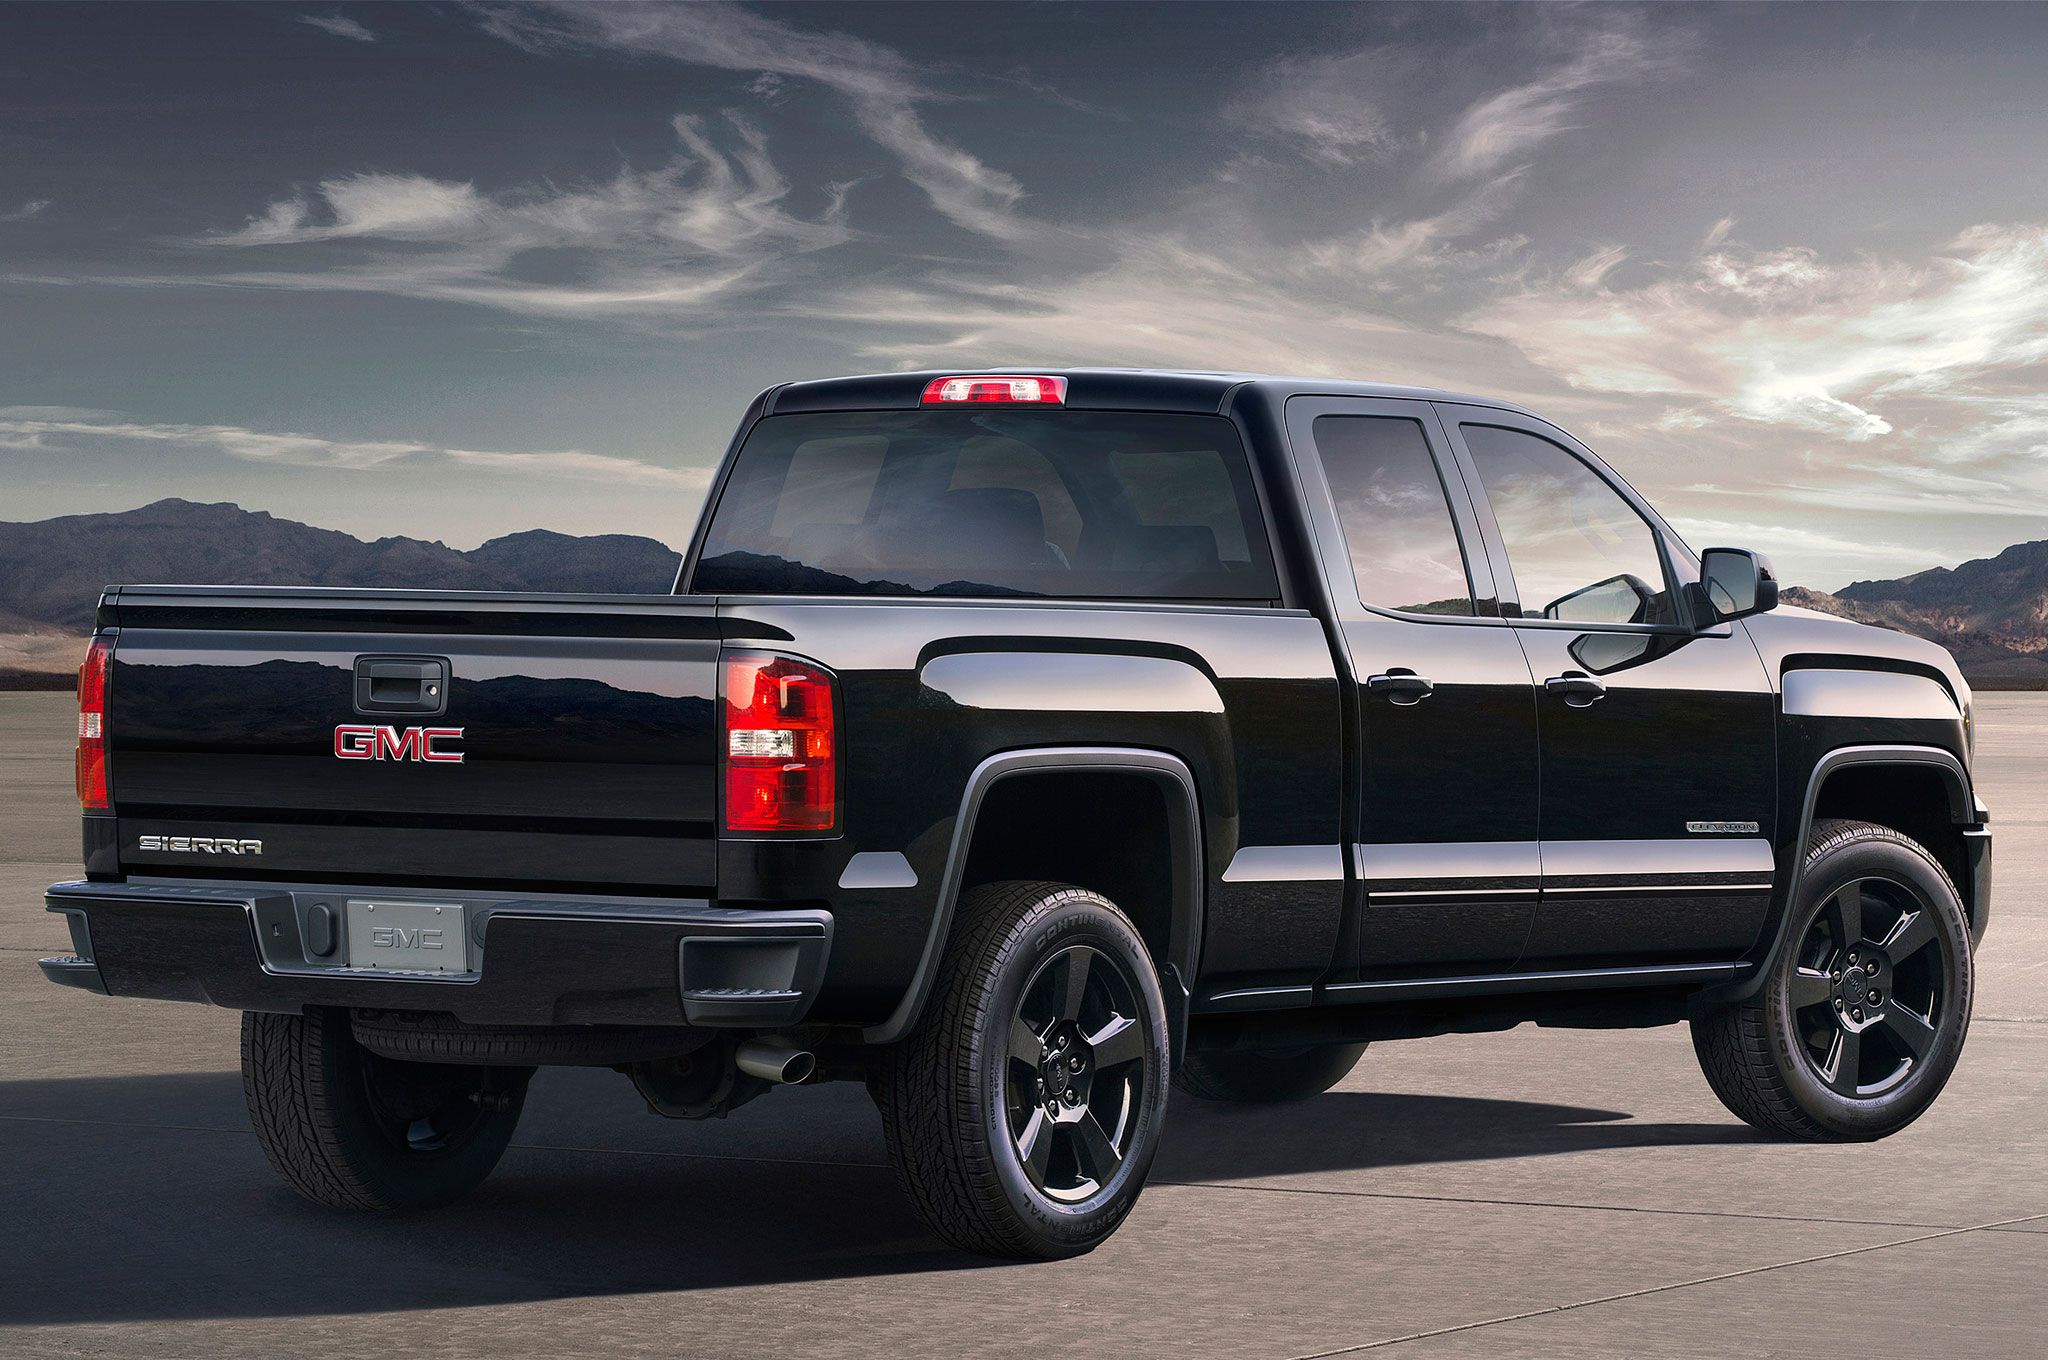 2015 gmc sierra special edition trucks autos post. Black Bedroom Furniture Sets. Home Design Ideas